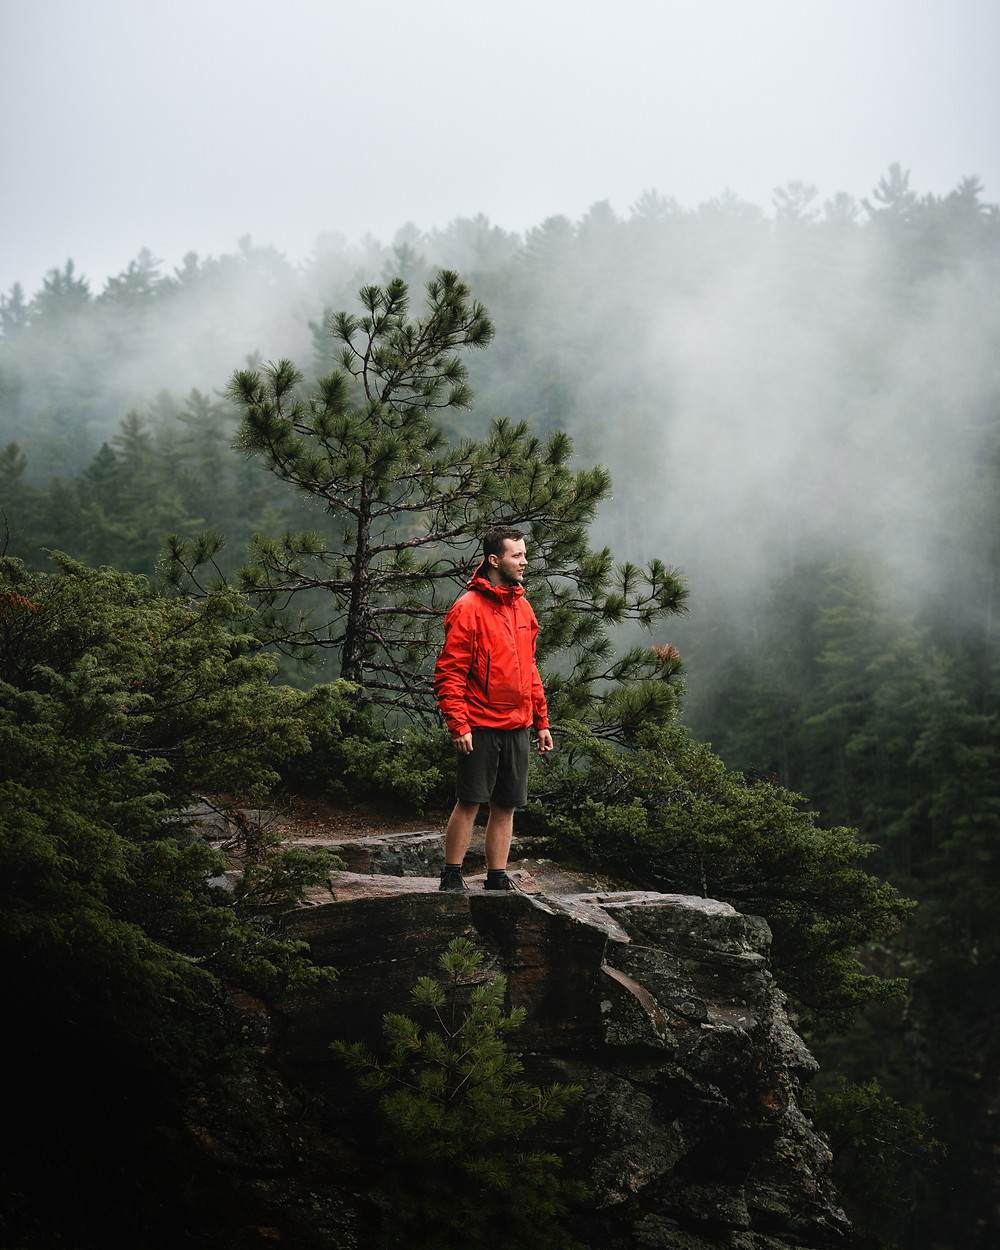 patagonia jacket barron canyon foggy mist camping backcountry Algonquin lifestyle photography michael frymus mfvisuals.ca